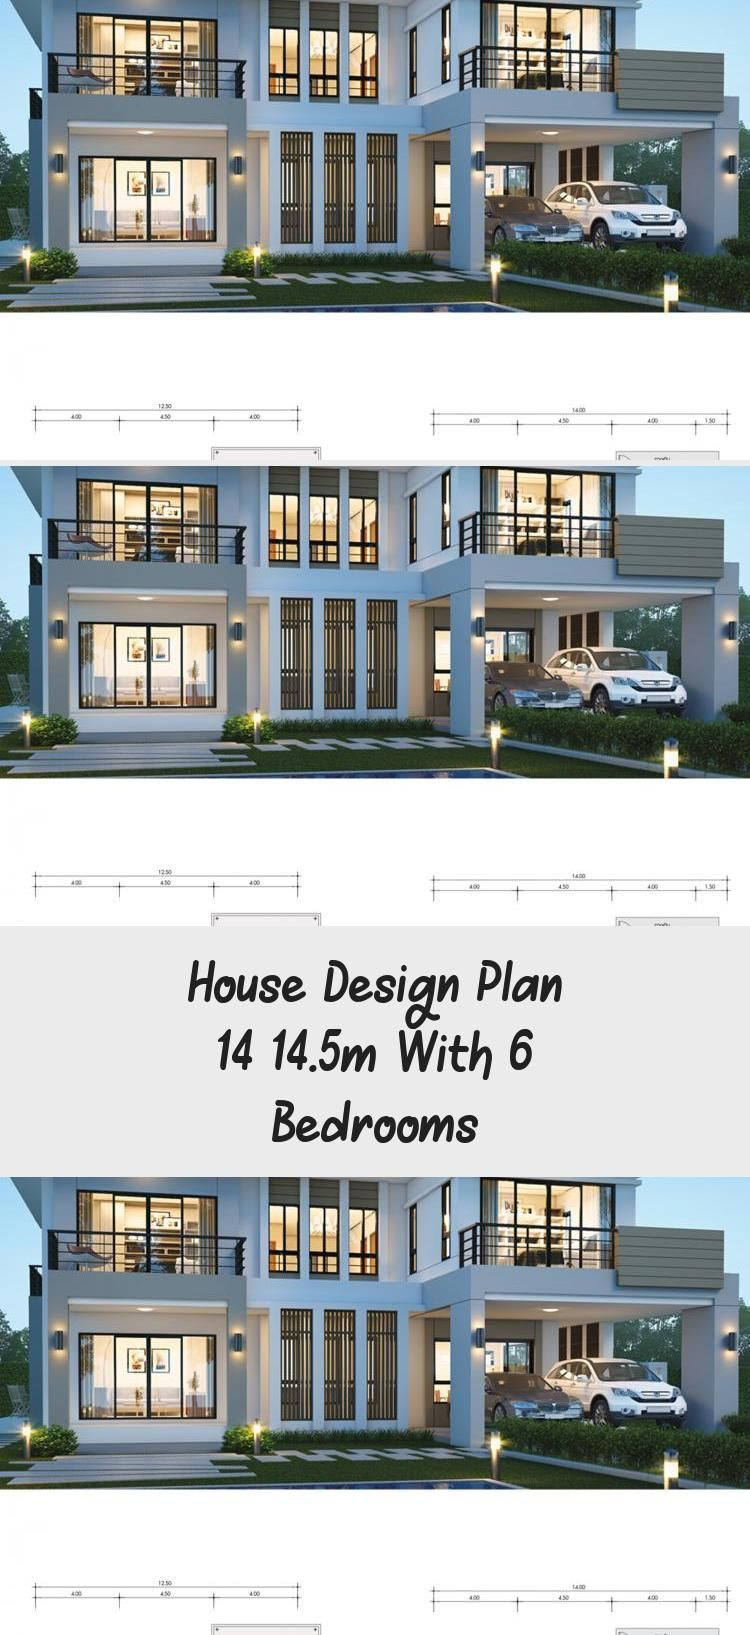 House Design Plan 14x14 5m With 6 Bedrooms Home Design With Plansearch Lakehouseplans Houseplansdesig In 2020 Home Design Plans Square House Plans Pool House Plans